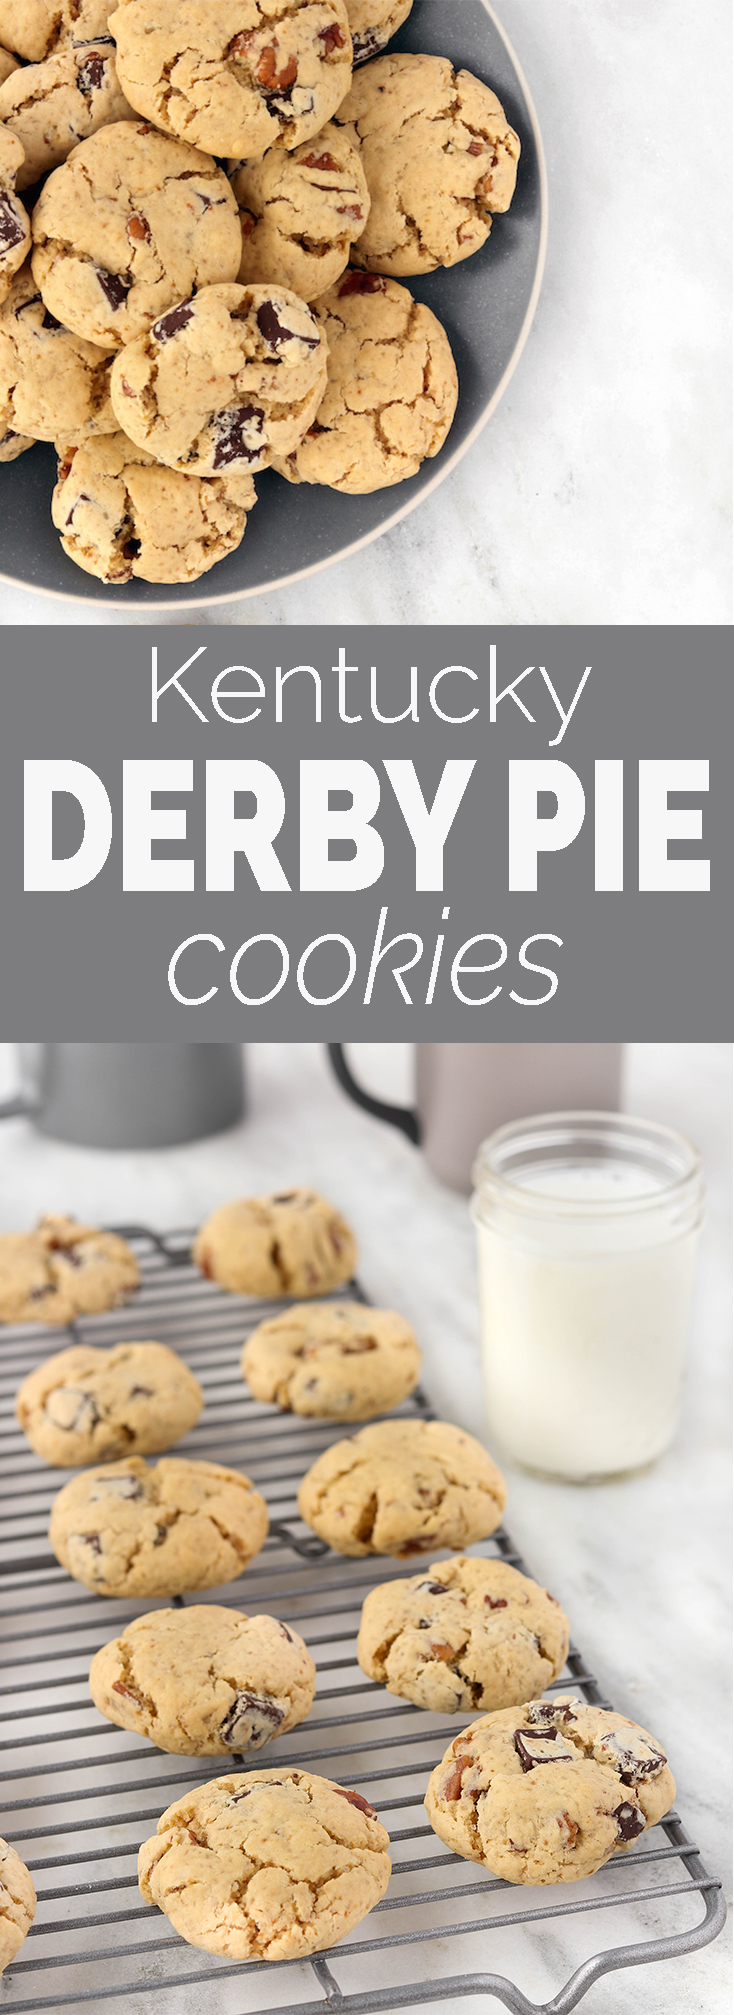 7-Ingredient Gluten-Free Kentucky Derby Cookies are a new twist on an old Southern Classic. Tender, simple and delicious! #glutenfree